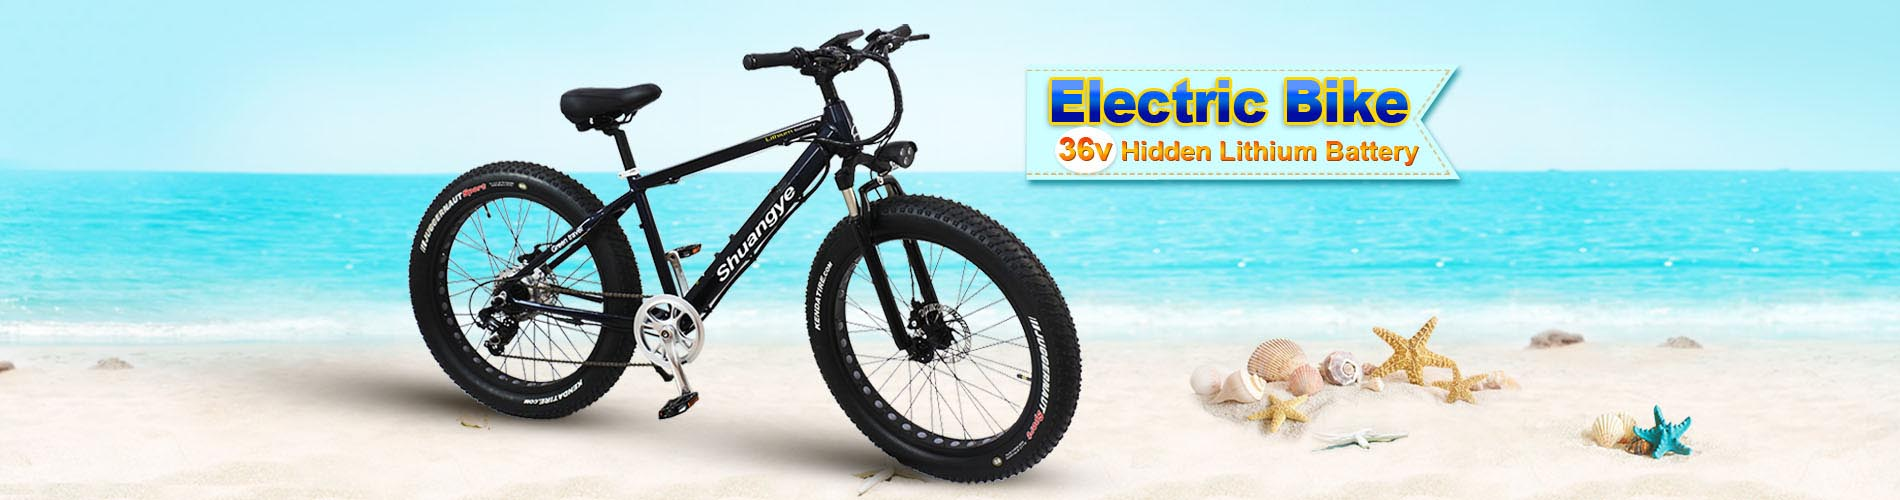 electric city bike 36v green power battery A3AL28